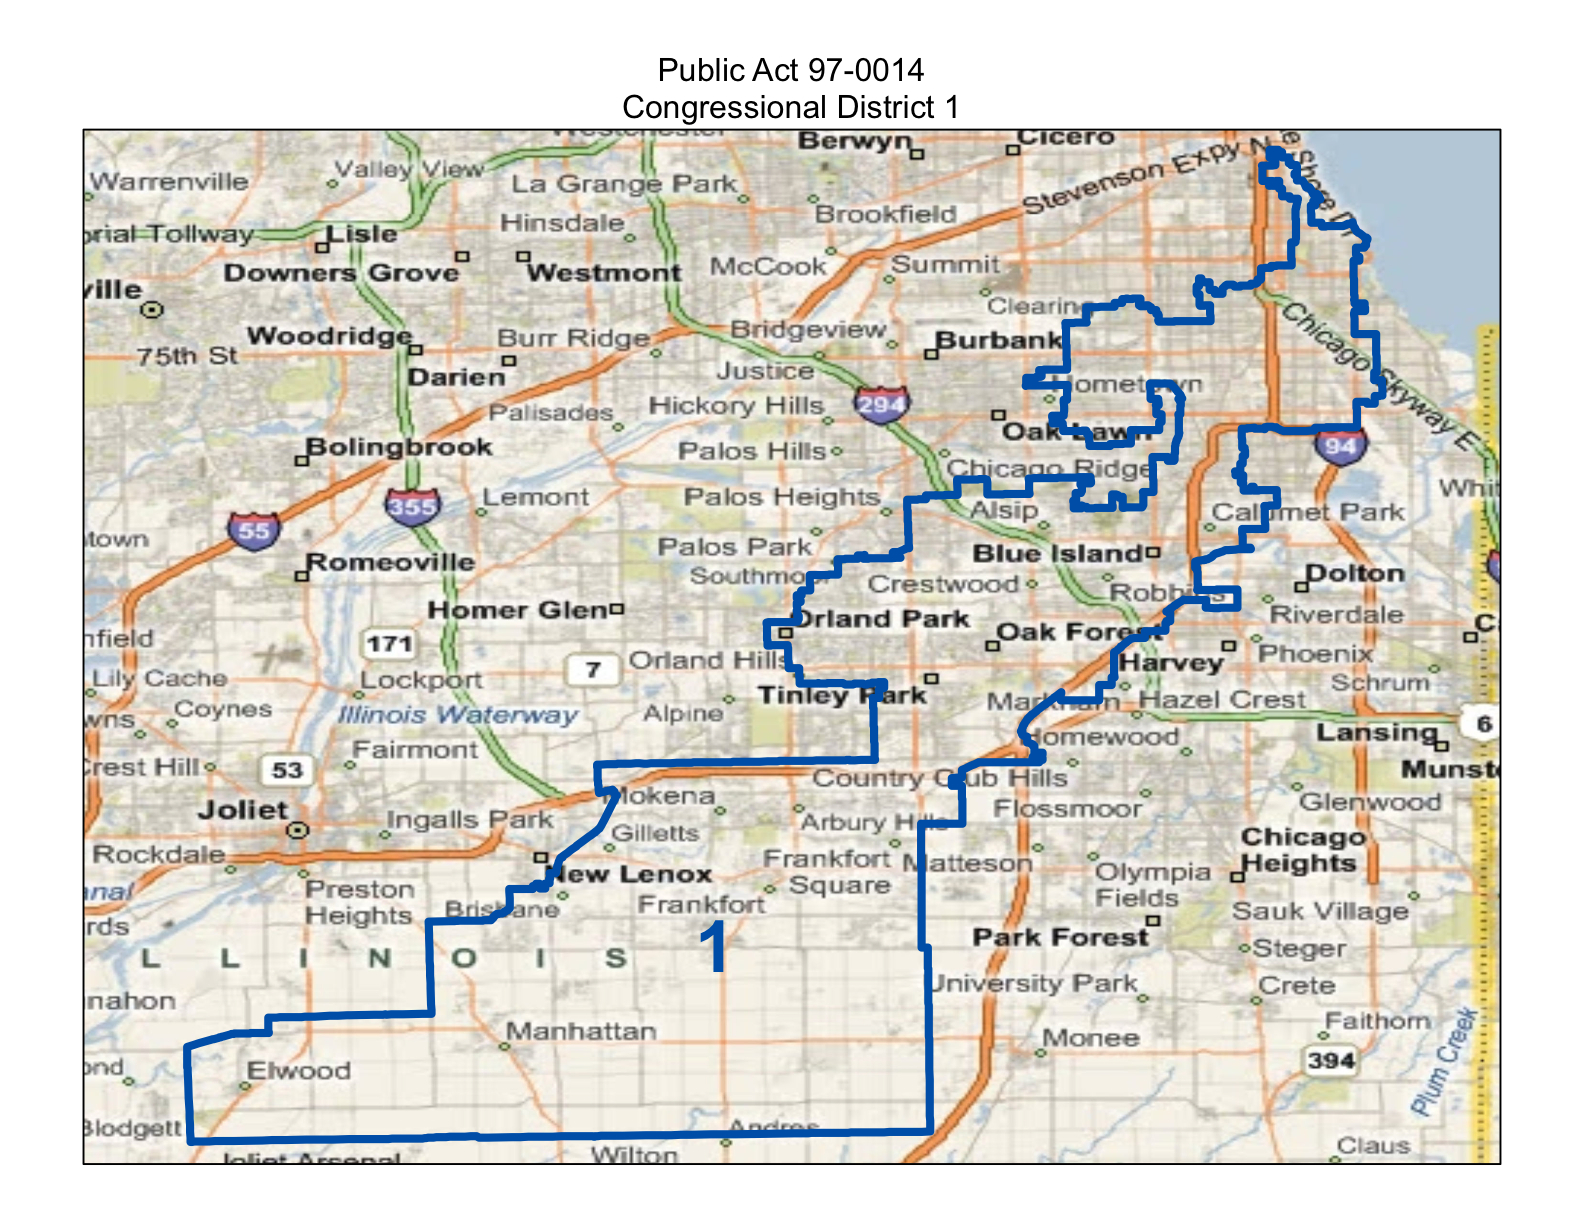 frankfort illinois is part of the 1st congressional district for the november 2012 election